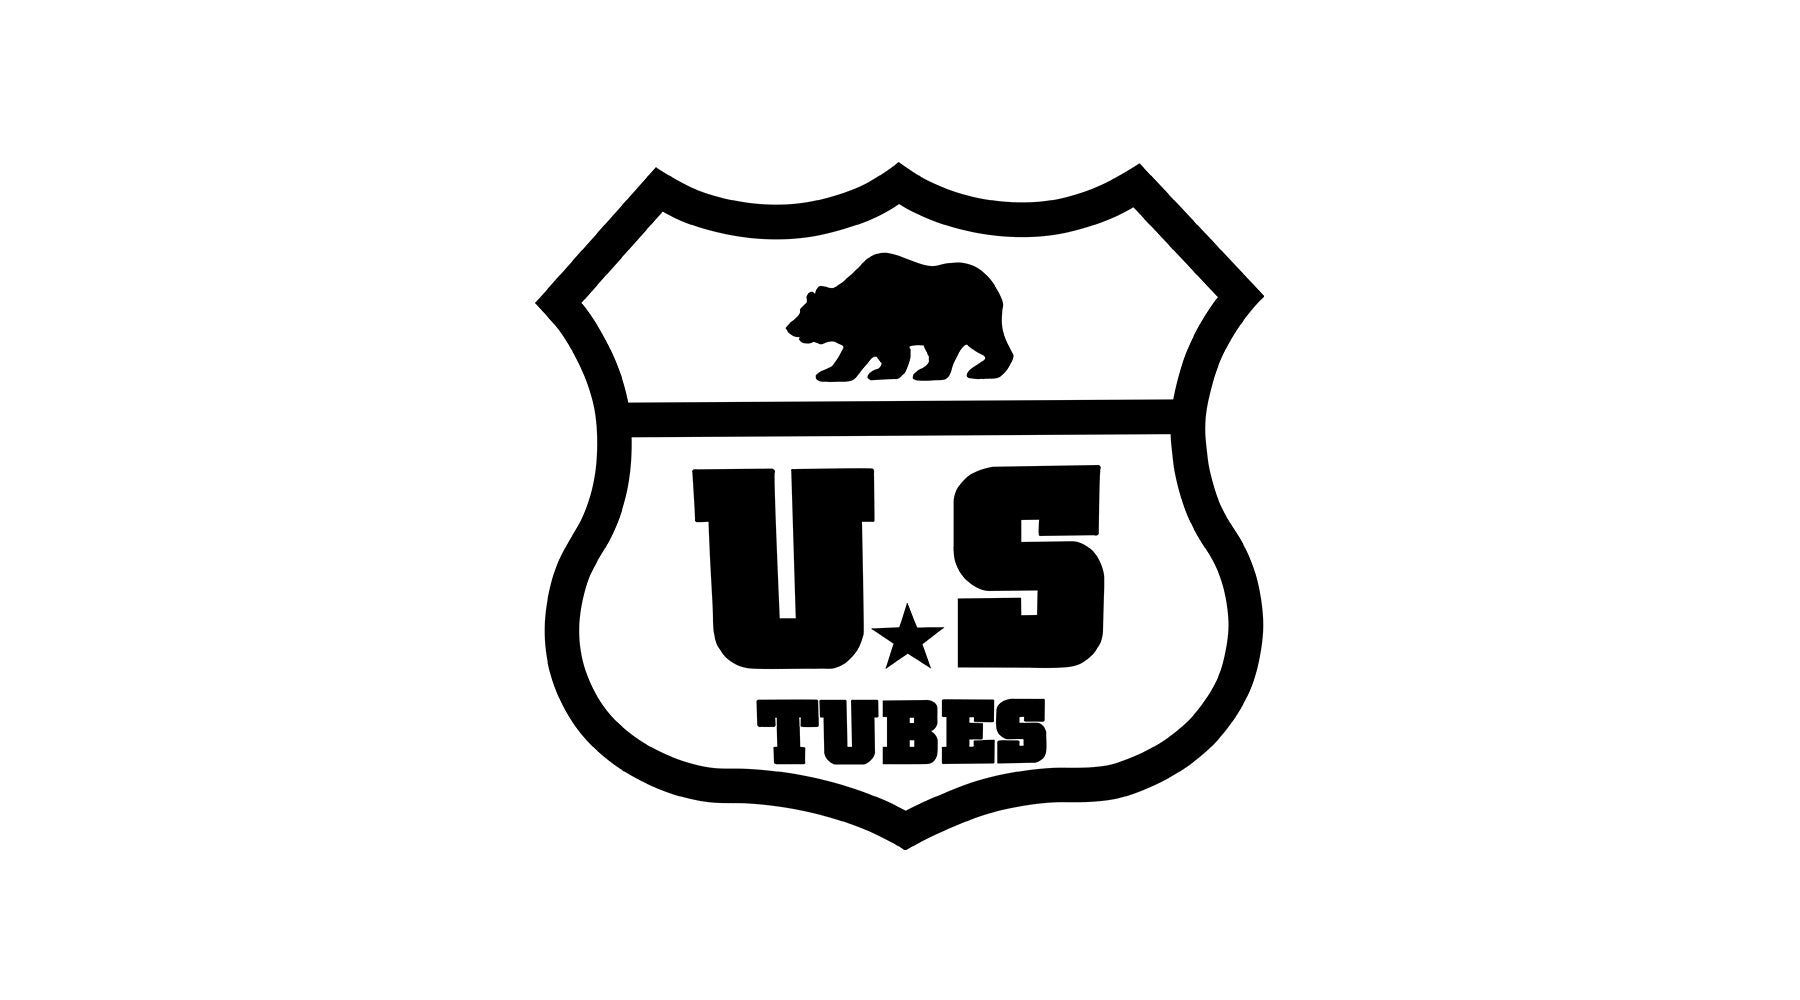 US TUBES Highway Logo in Black